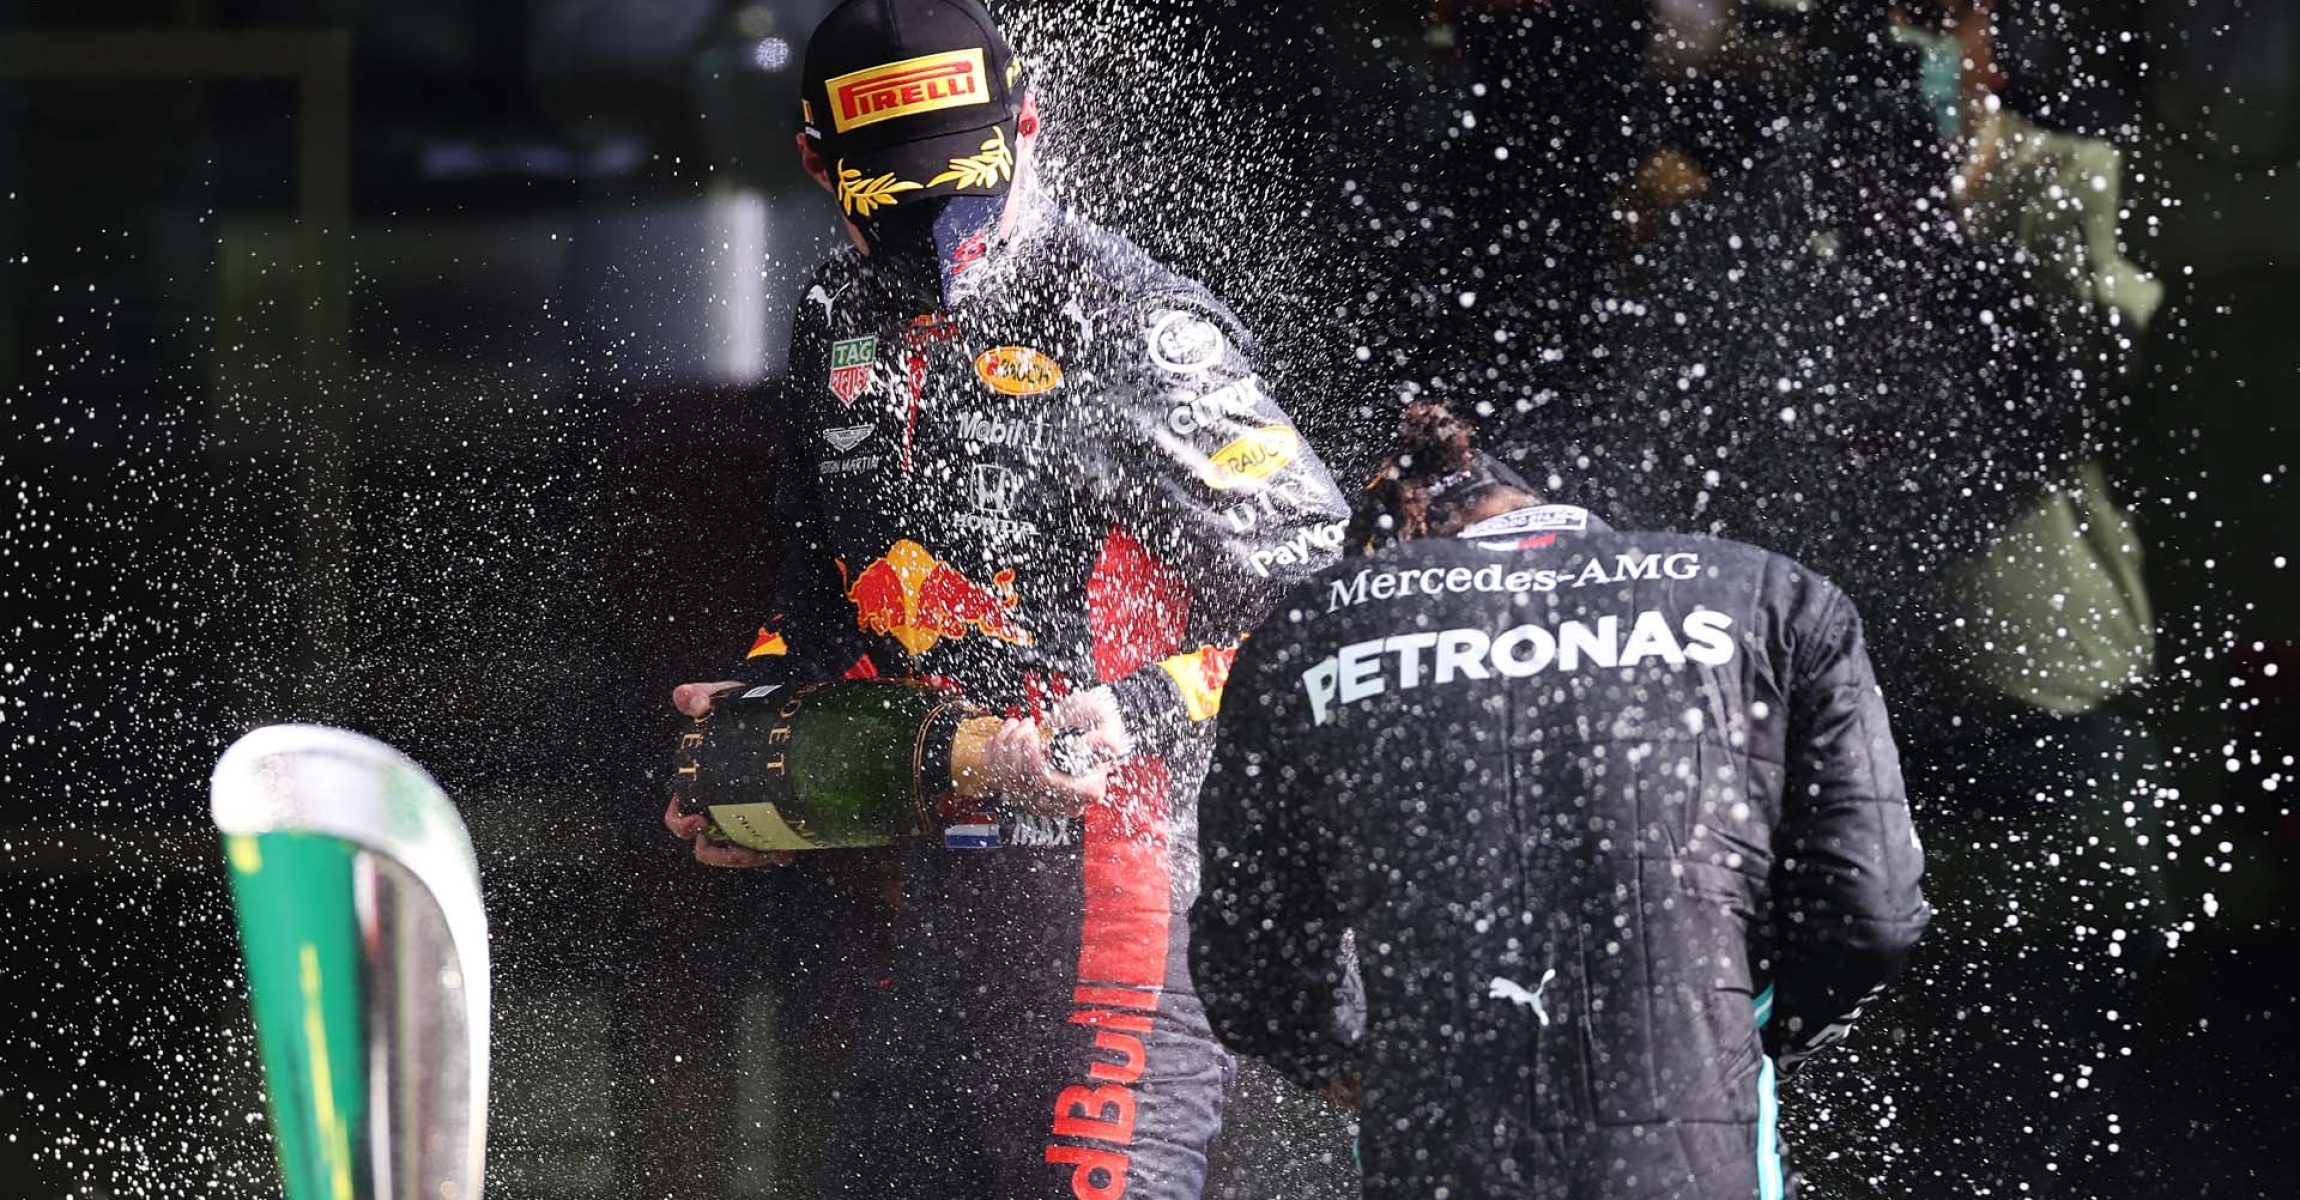 SPA, BELGIUM - AUGUST 30: Race winner Lewis Hamilton of Great Britain and Mercedes GP and Third placed Max Verstappen of Netherlands and Red Bull Racing celebrate on the podium during the F1 Grand Prix of Belgium at Circuit de Spa-Francorchamps on August 30, 2020 in Spa, Belgium. (Photo by Lars Baron/Getty Images)